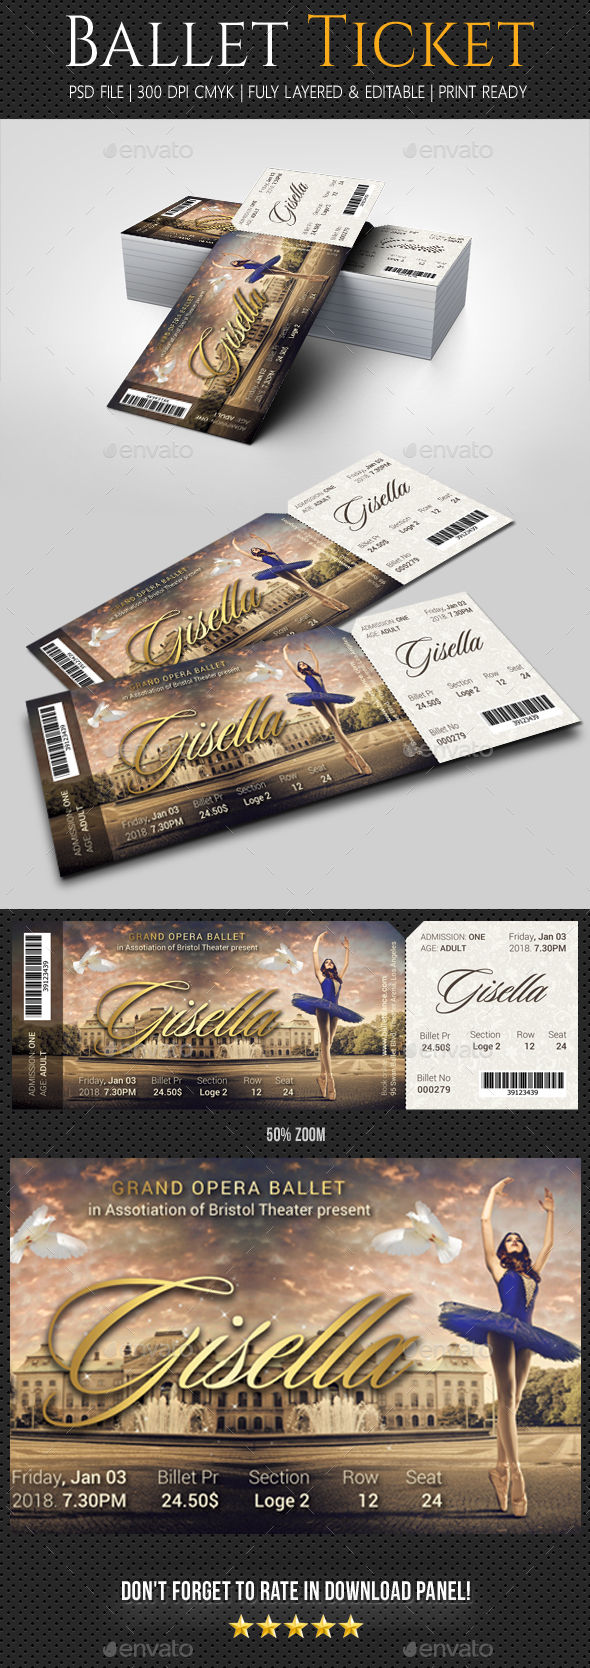 Ballet Ticket - Cards & Invites Print Templates